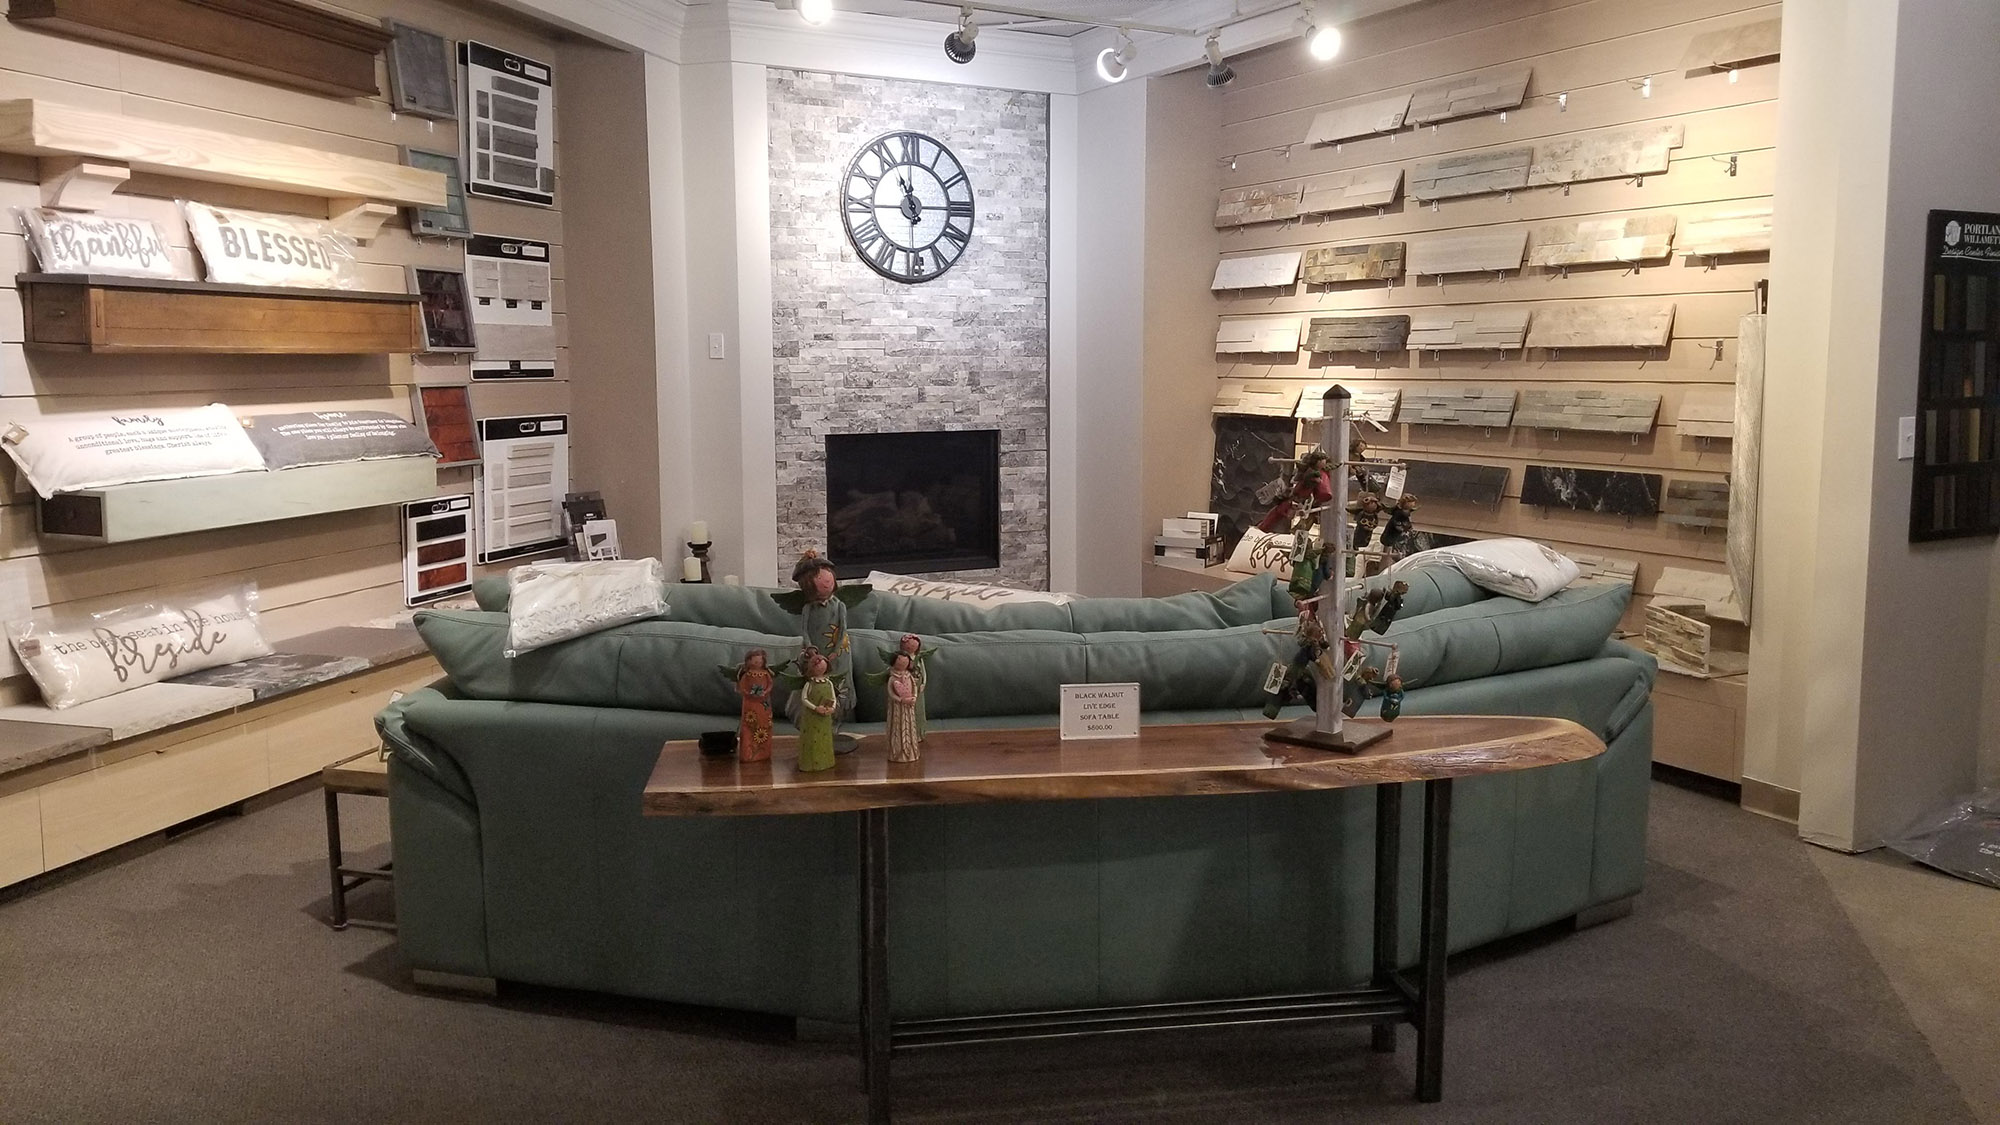 showroom display of living room furniture and tile flooring at landscaping supply store